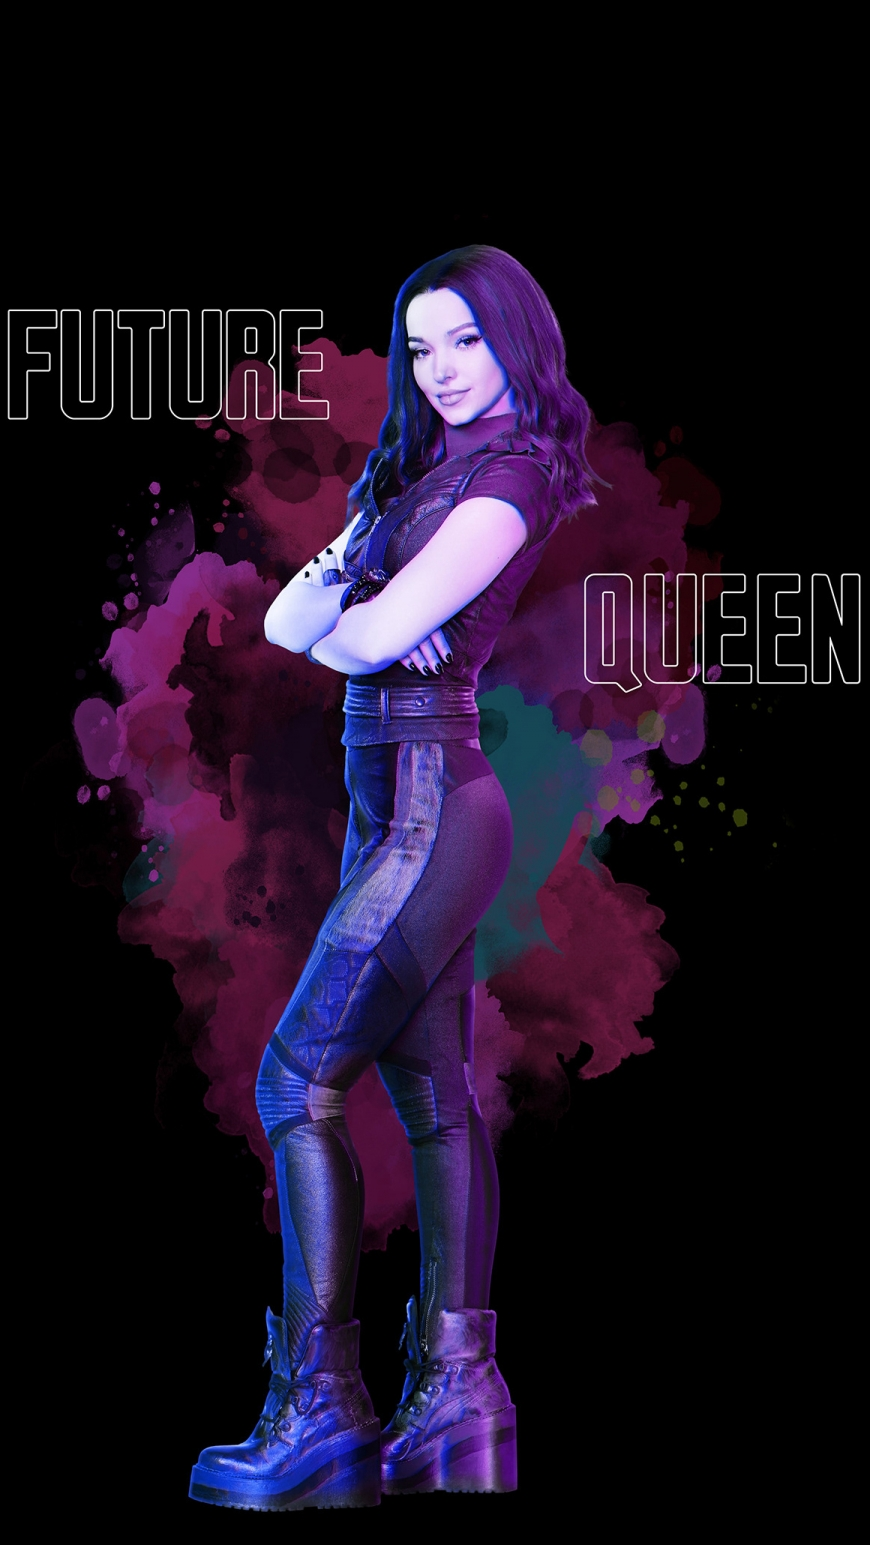 Disney Descendants 3 mobile phone wallpapers